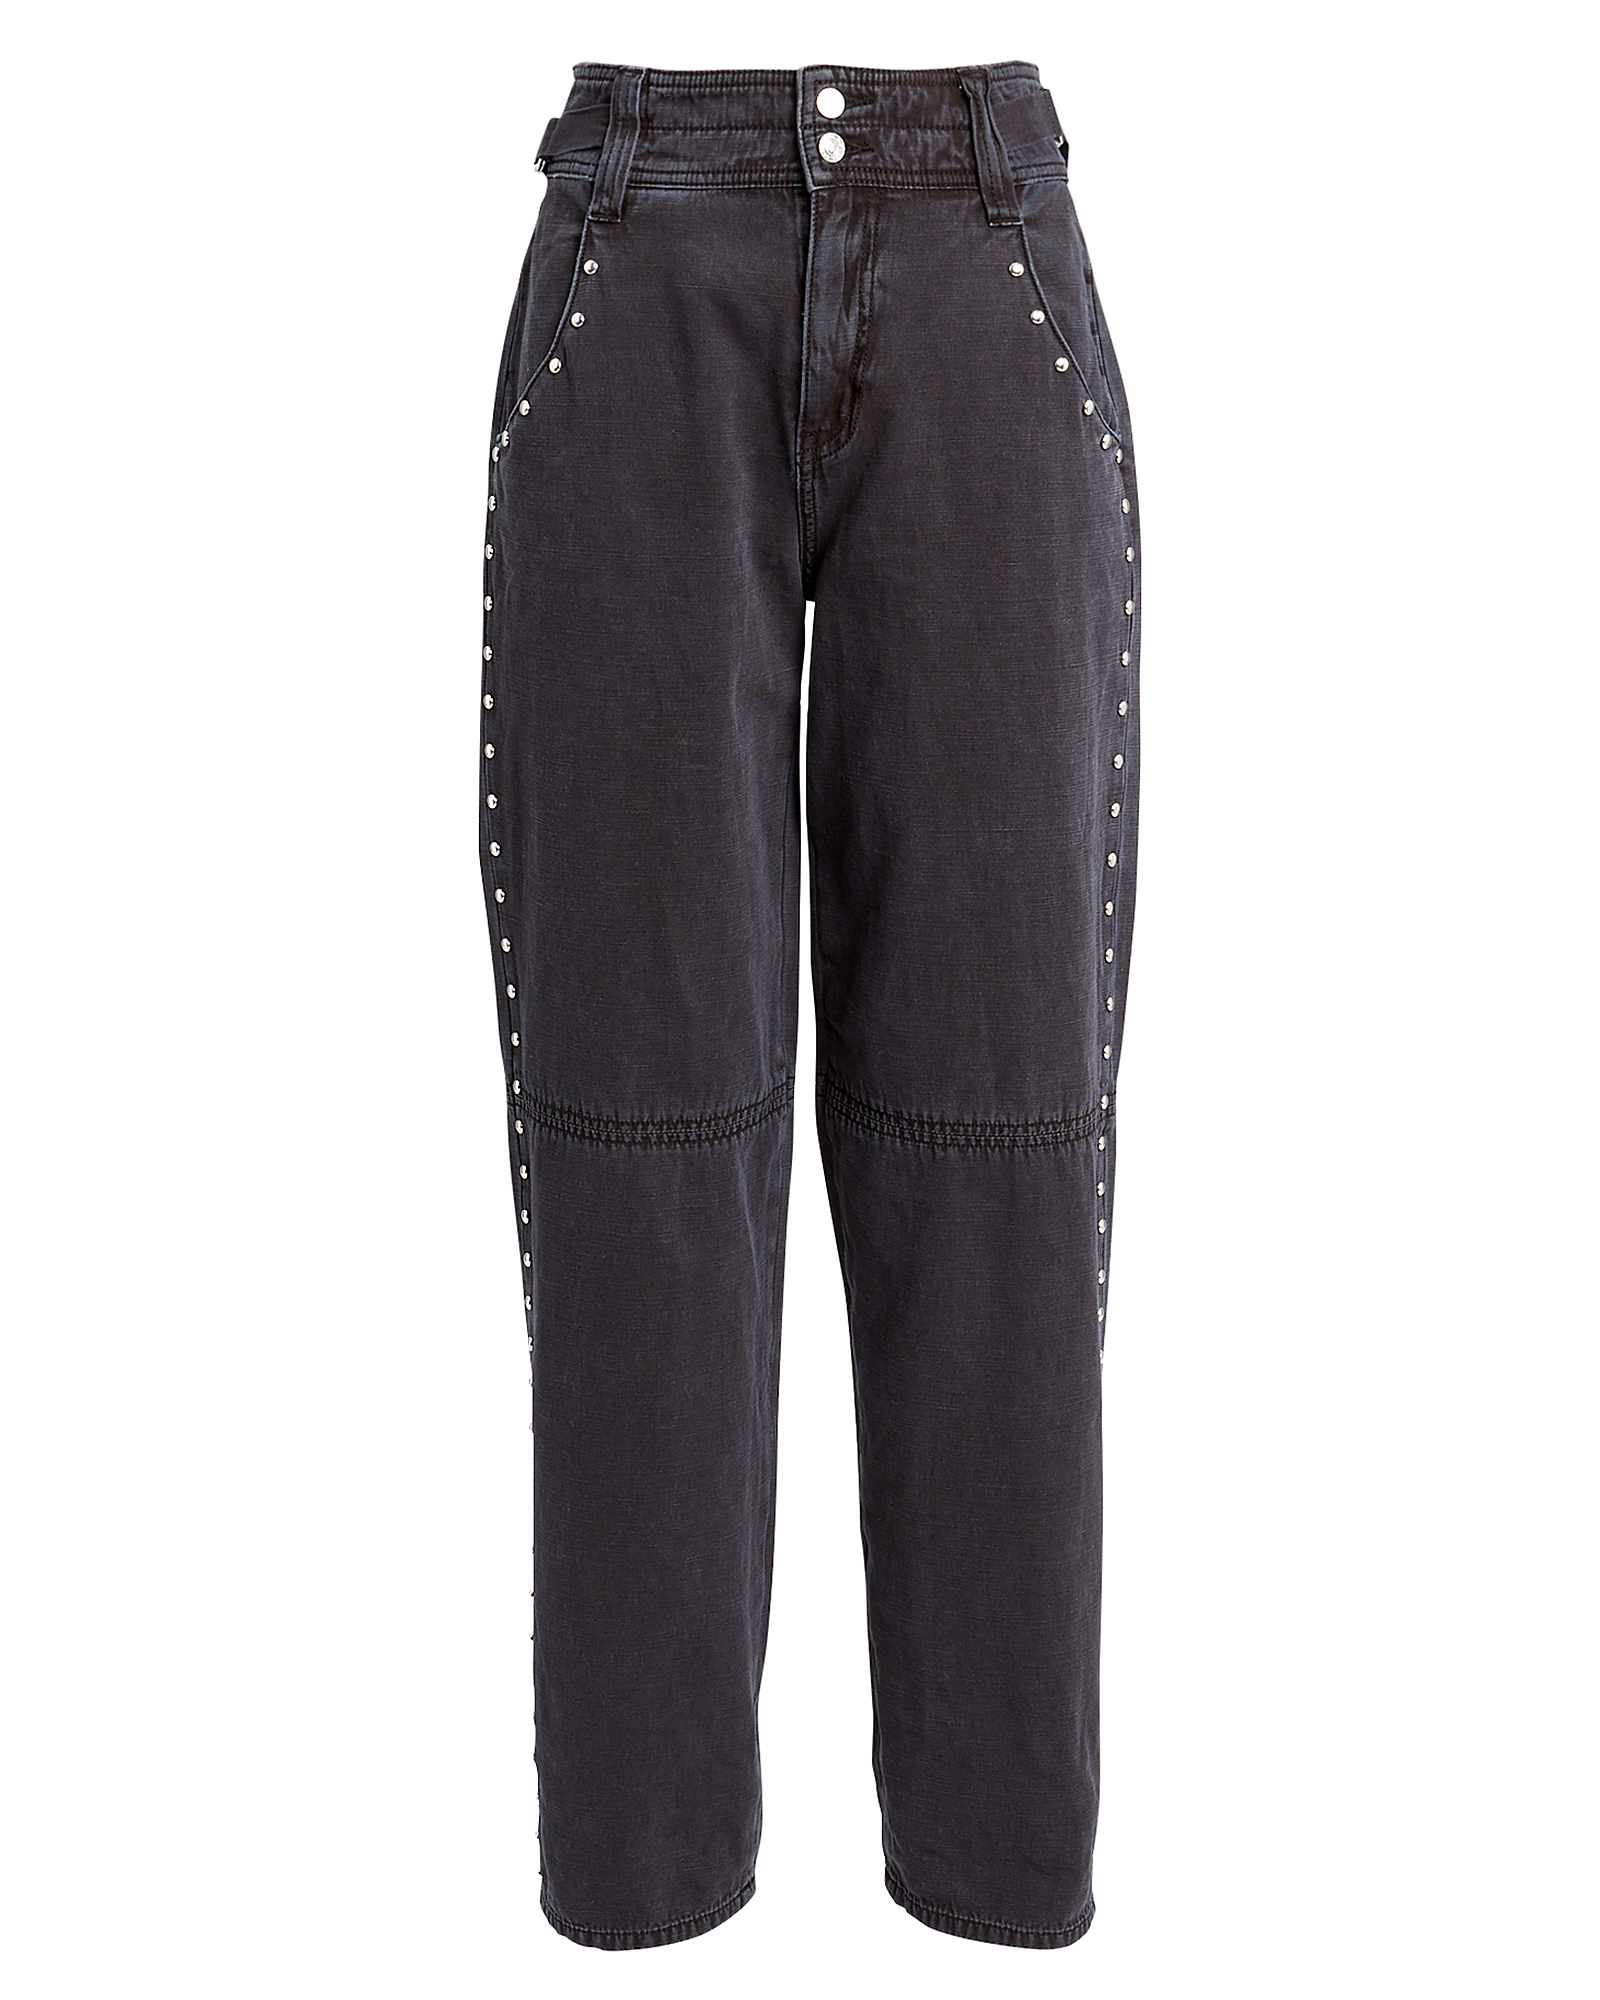 Current Elliott Studded Debbie High-rise Jeans In Faded Black Denim